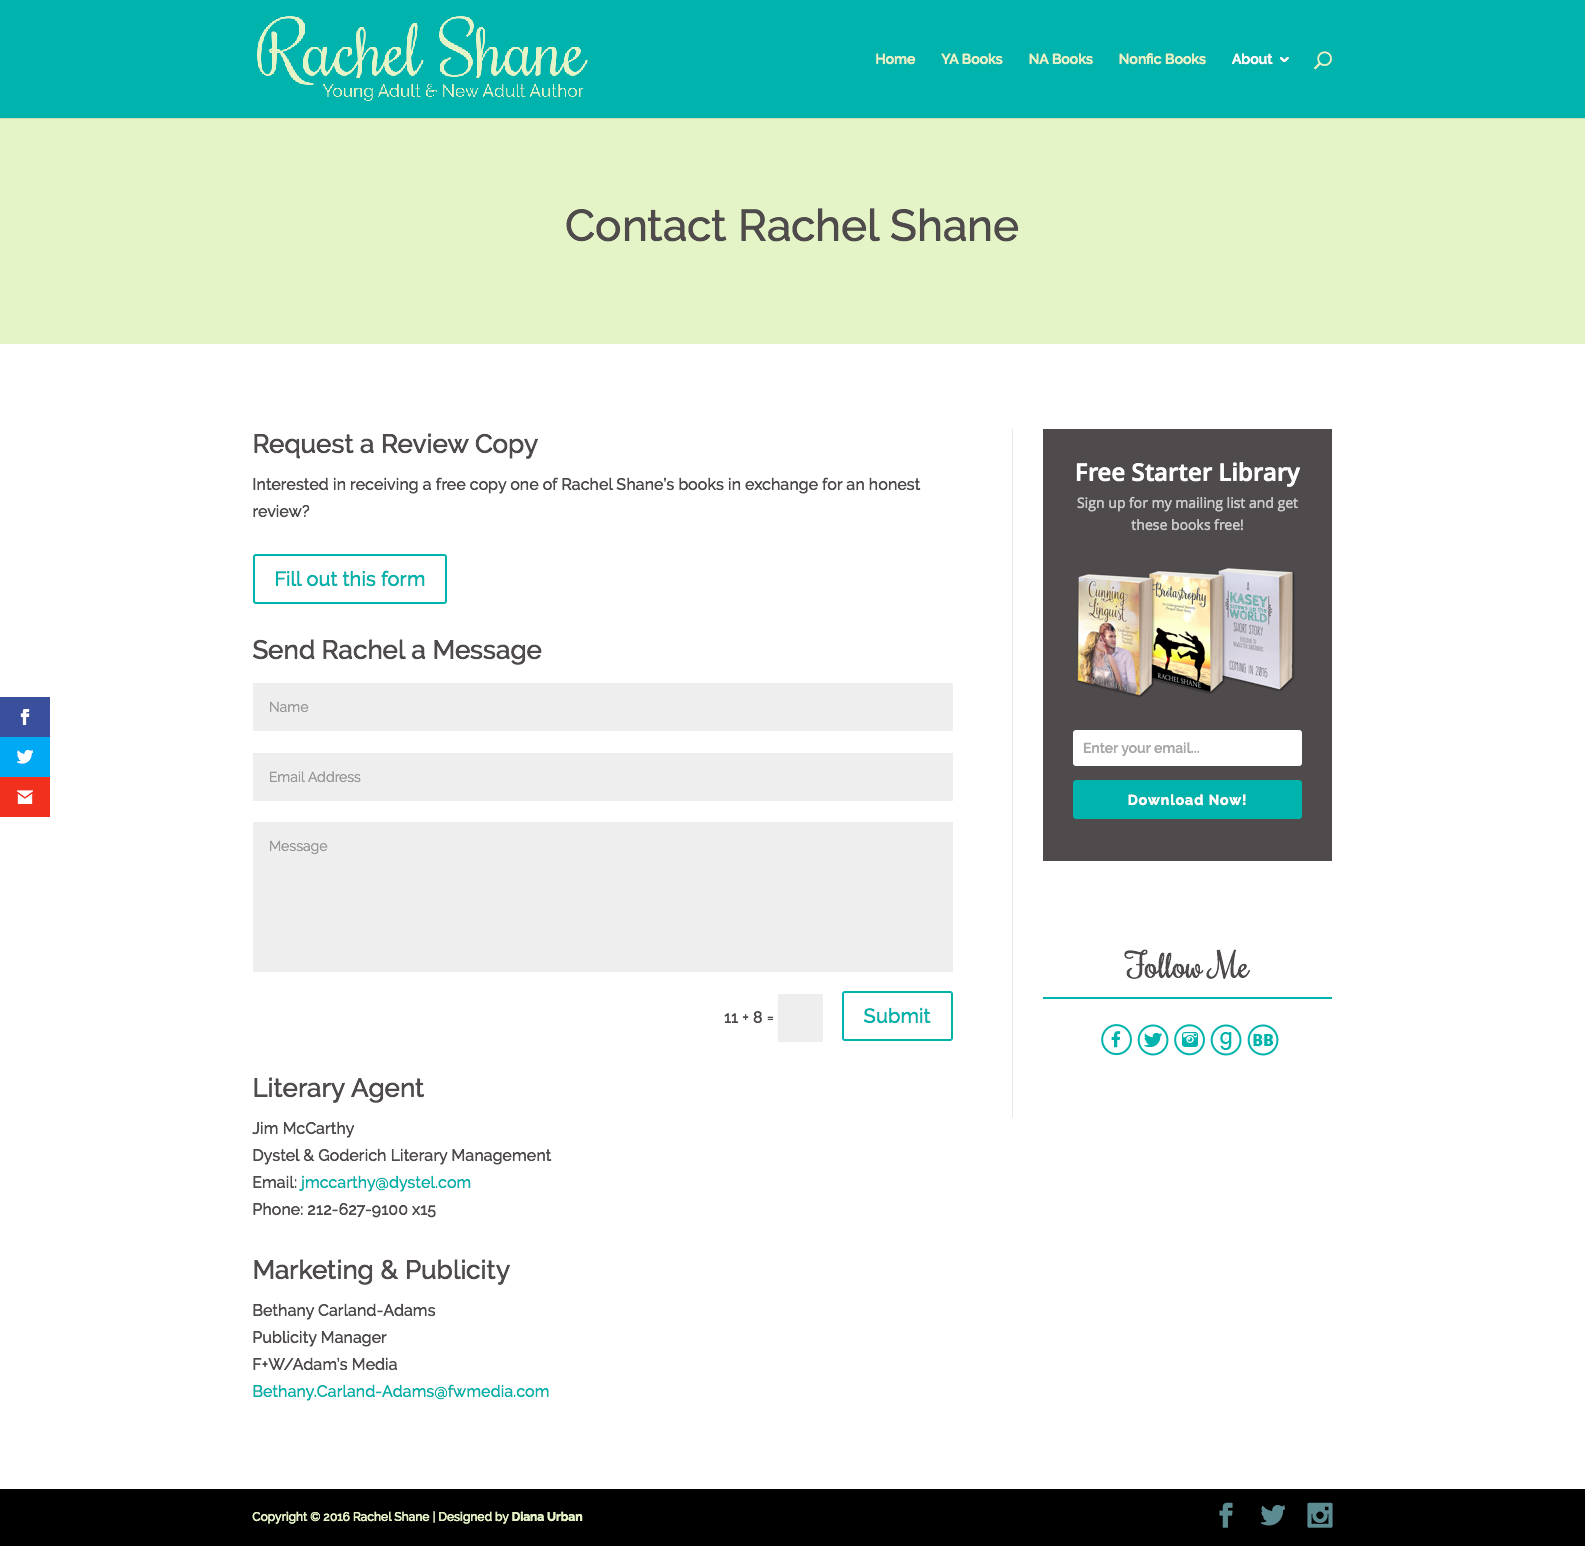 Rachel Shane's Contact Page